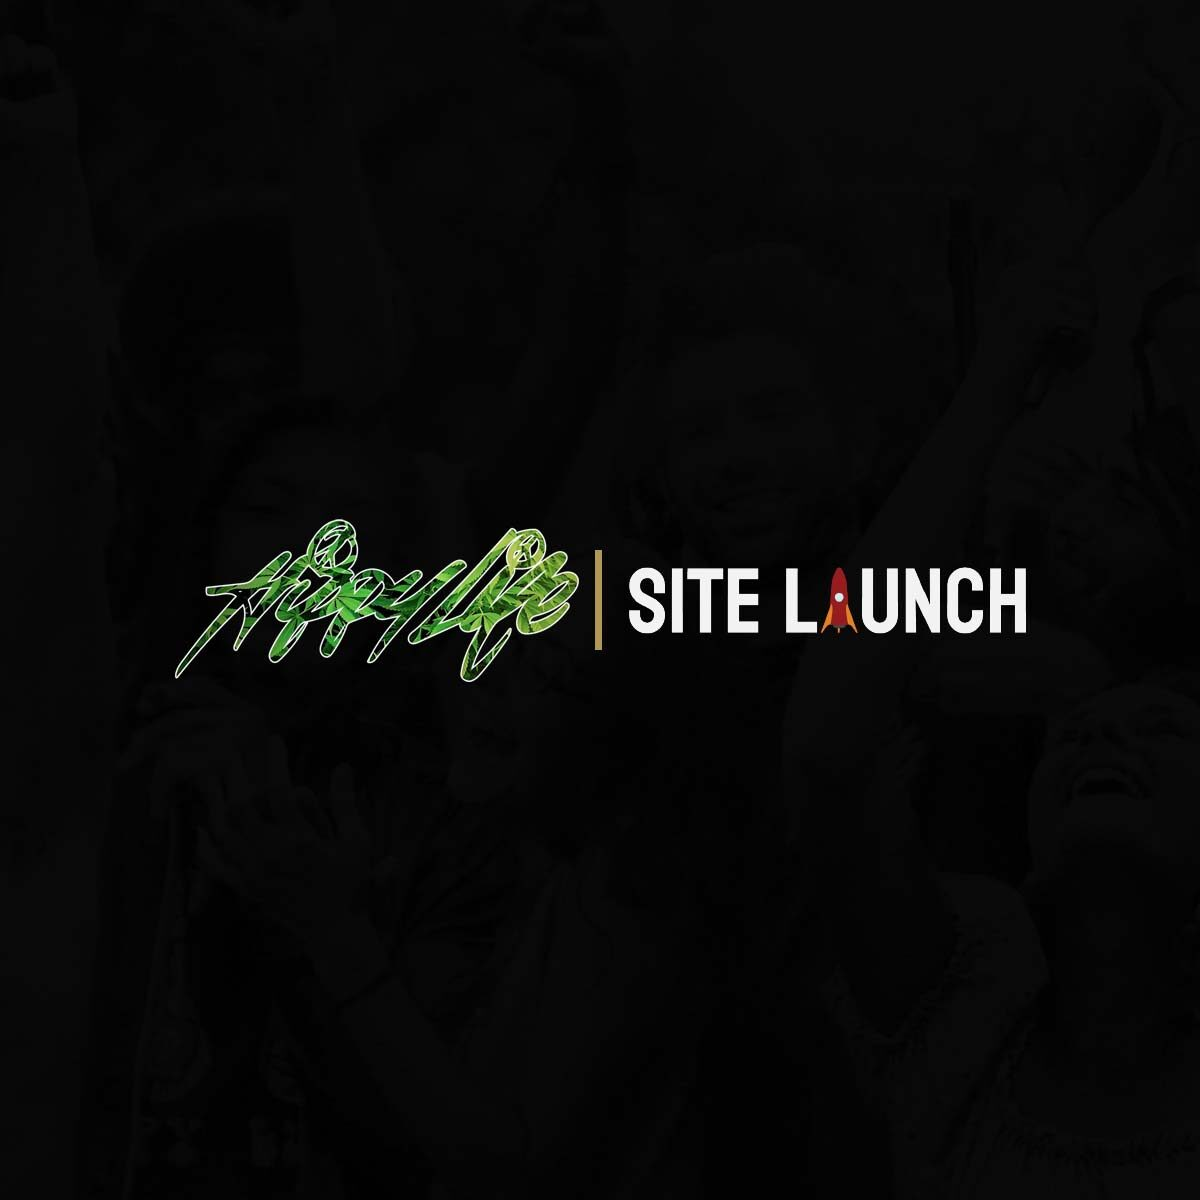 Hippy Life and Site Launch logo